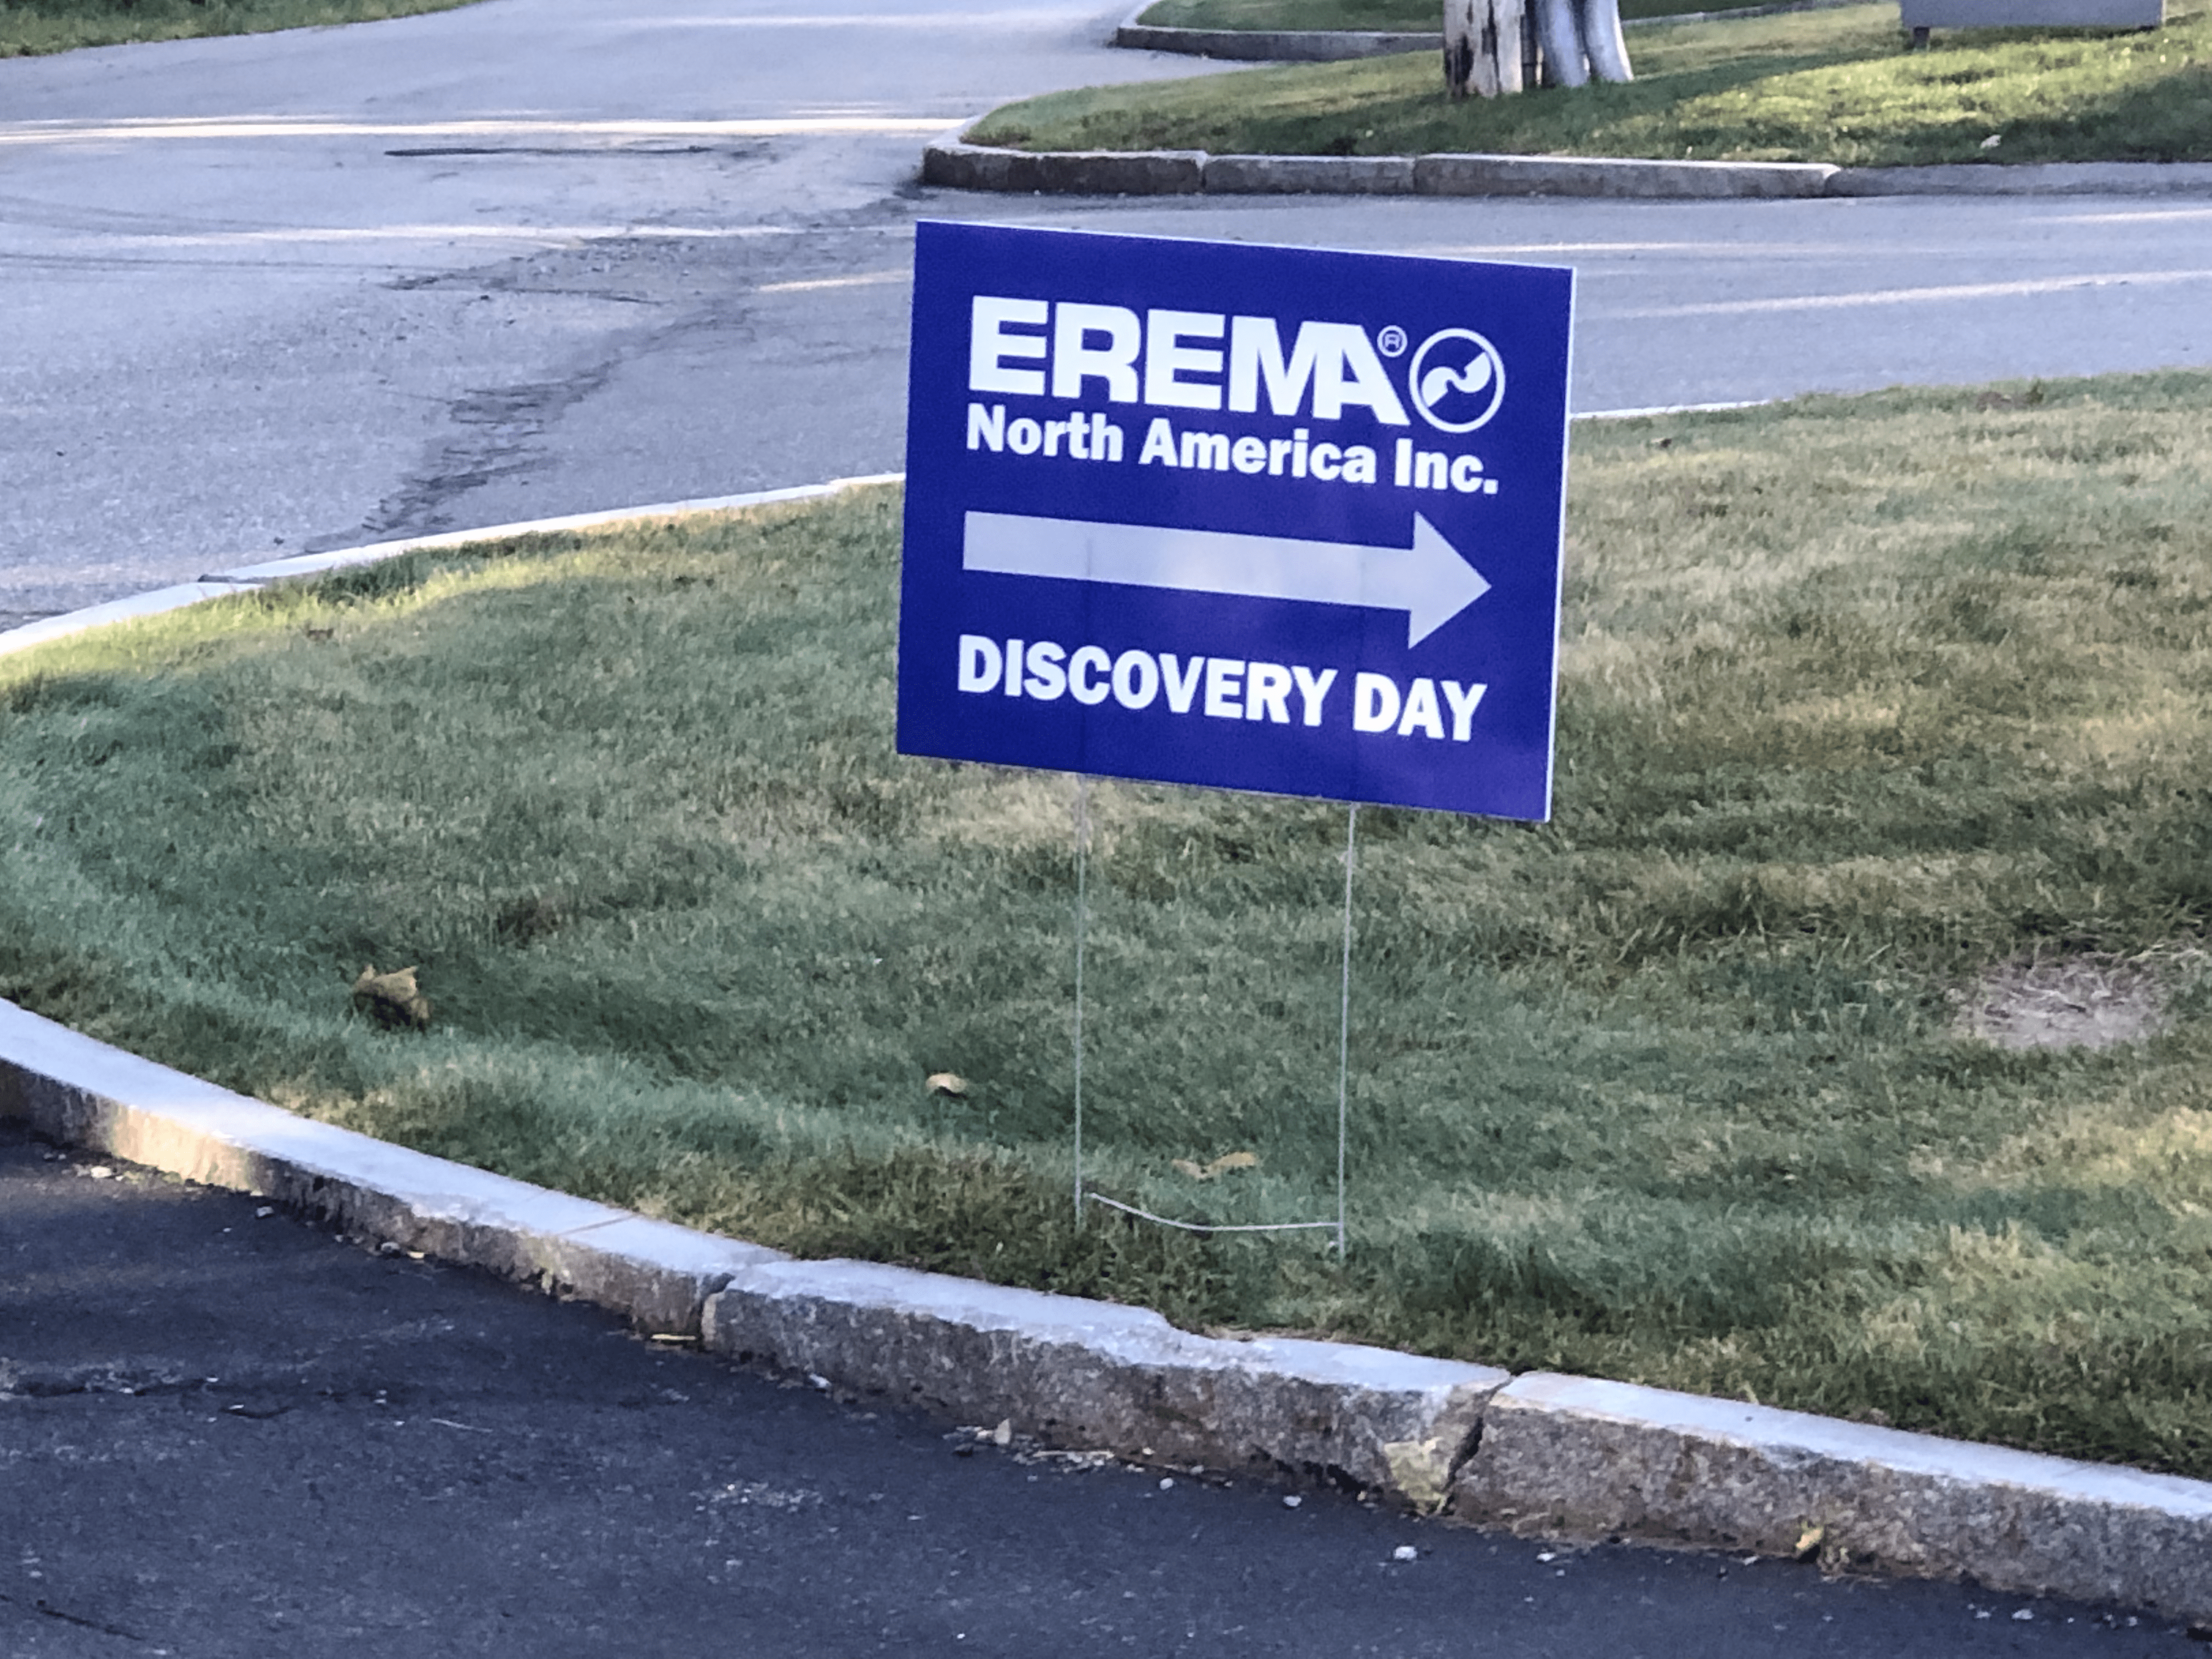 EREMA Discovery Day Opening Sign